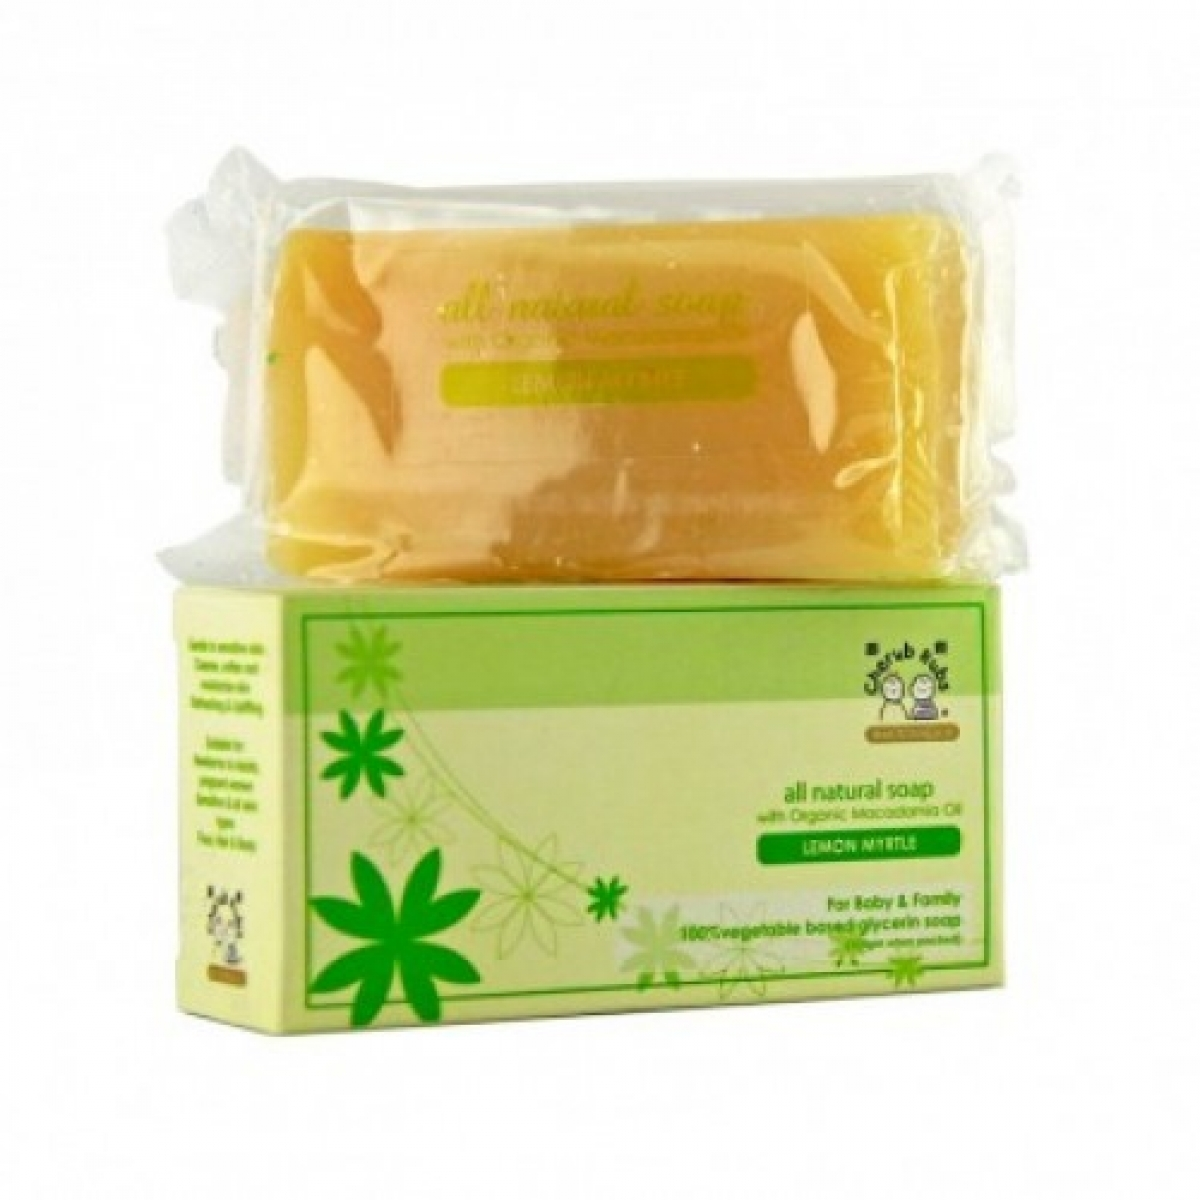 Cherub Rubs Lemon Myrtle Soap (100g)